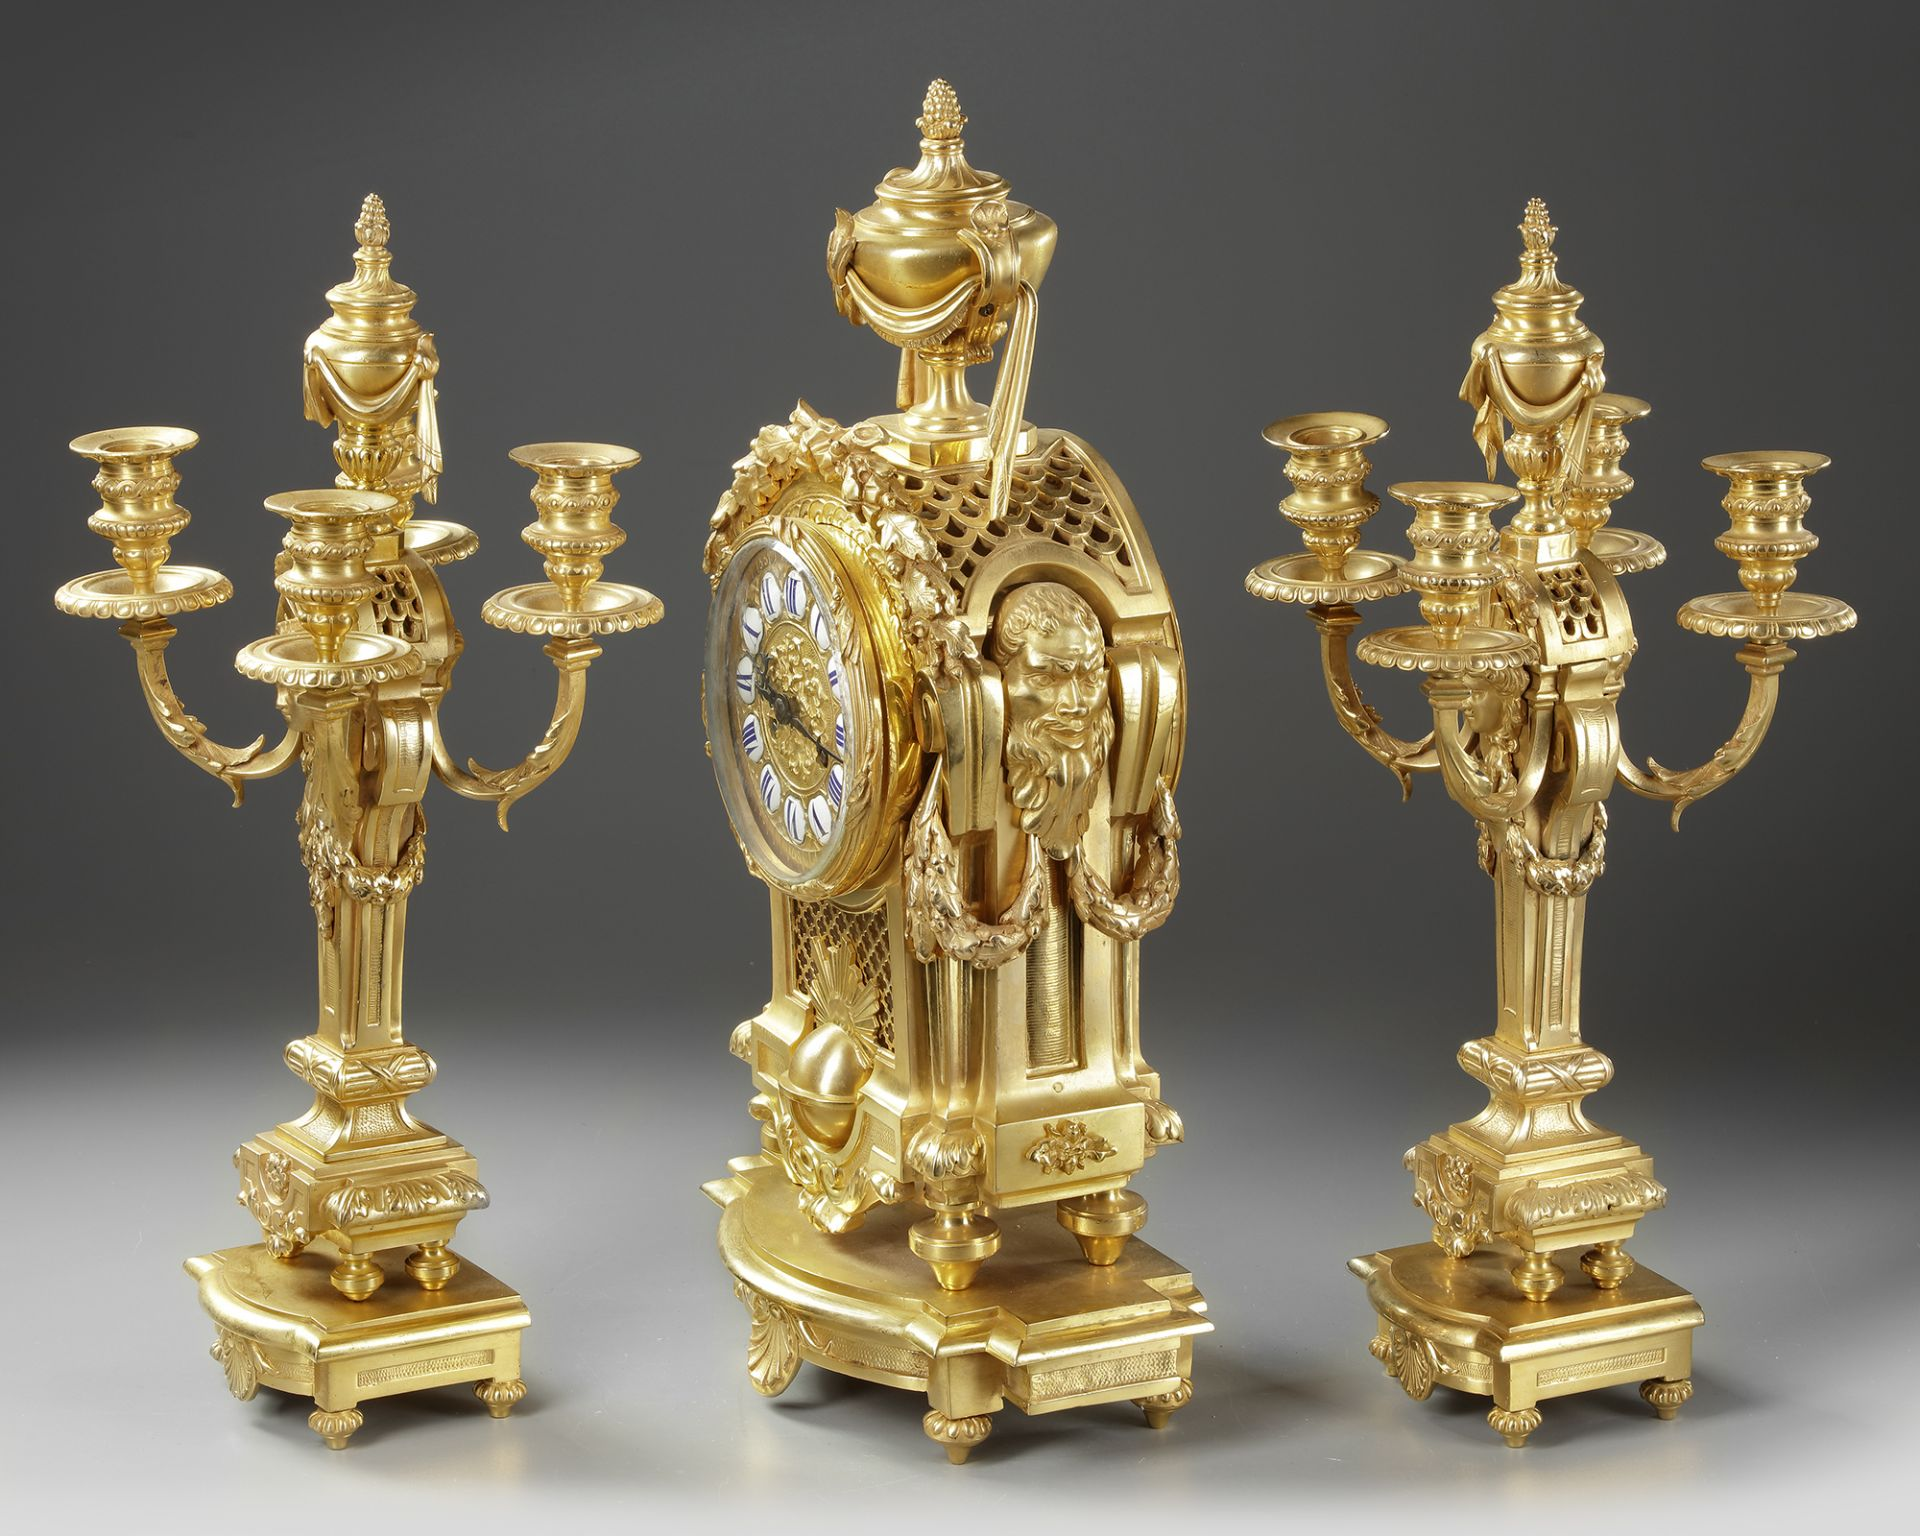 A FRENCH ORMOLU CLOCK SET, NAPOLEON III STYLE - Image 2 of 4